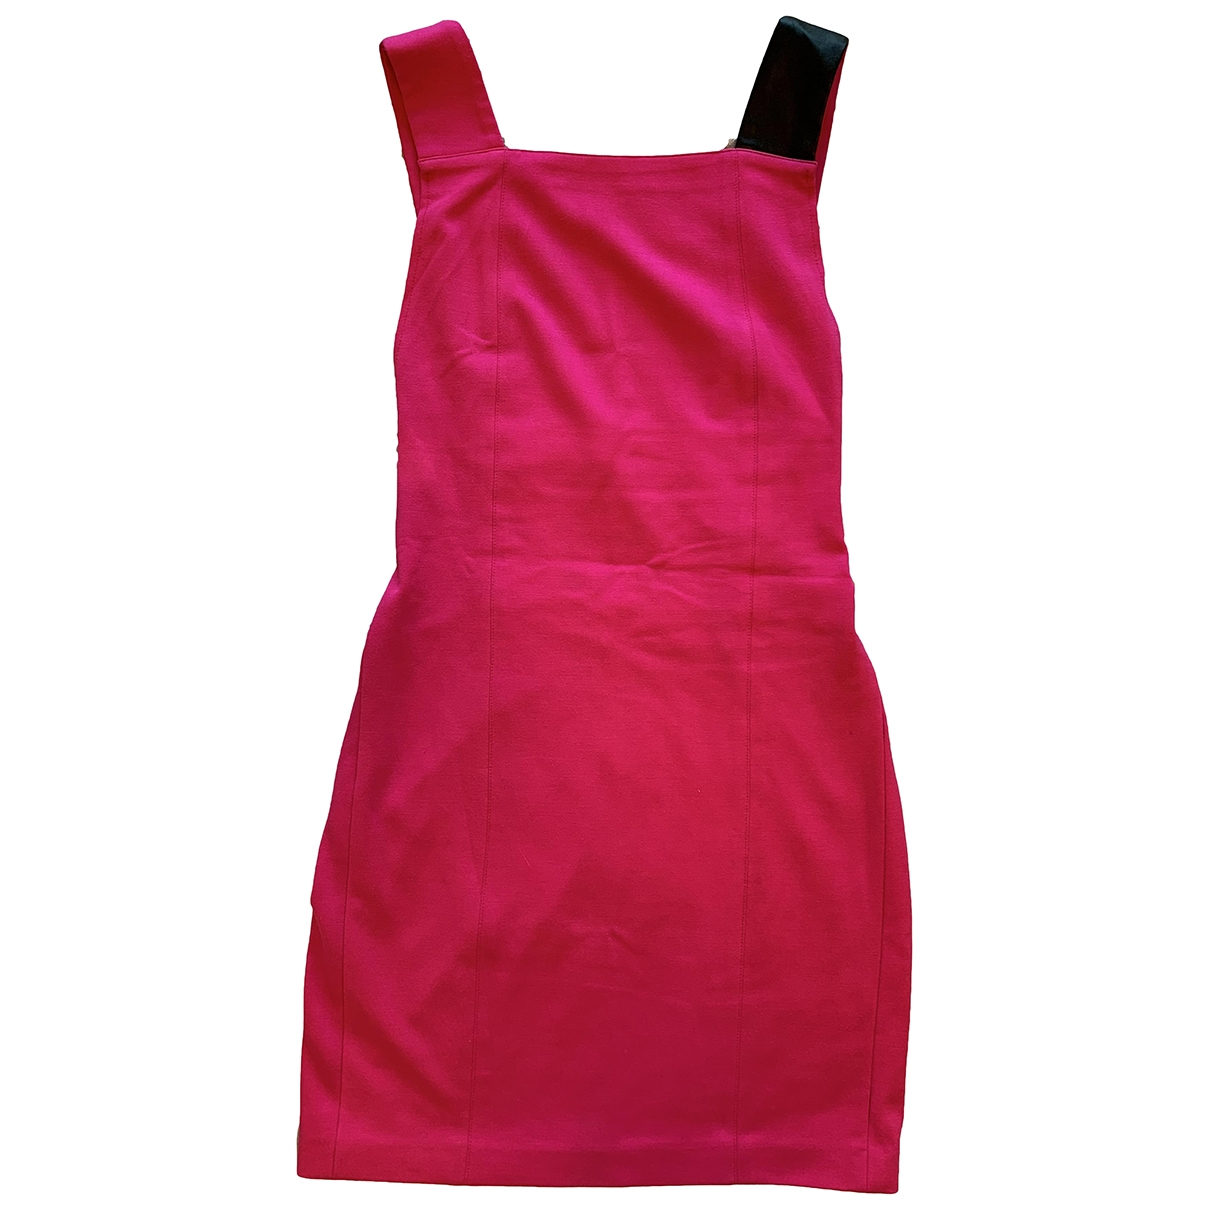 Fausto Puglisi \N Pink Cotton dress for Women S International